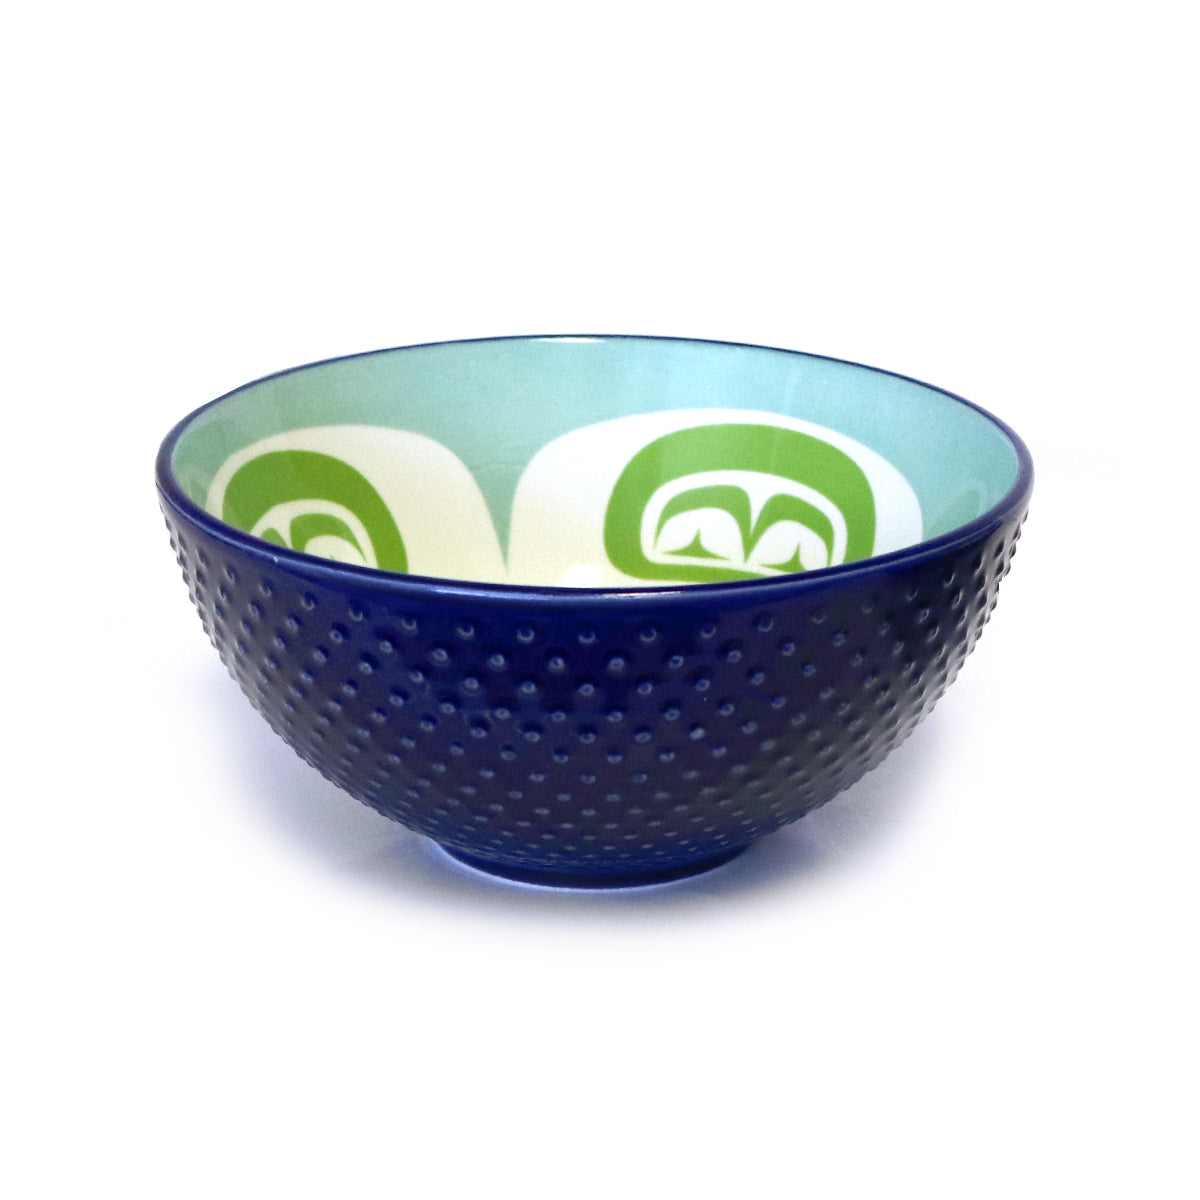 Moon - Large Porcelain Art Bowl